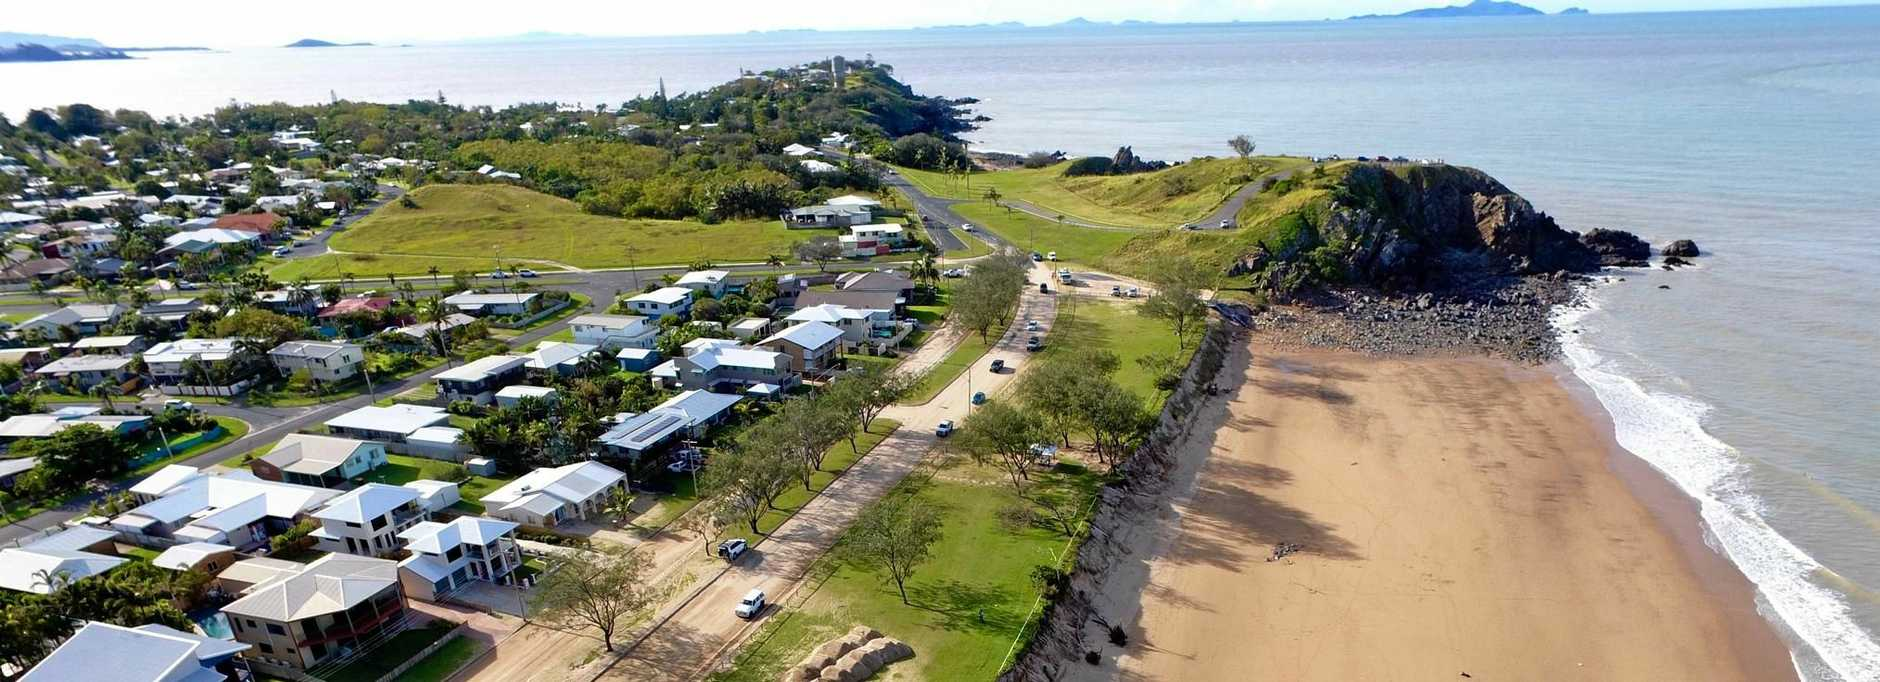 Damage after Cyclone Debbie tore through Lambert's Beach. Photos courtesy of Michael Kennedy/National Drones Mackay.